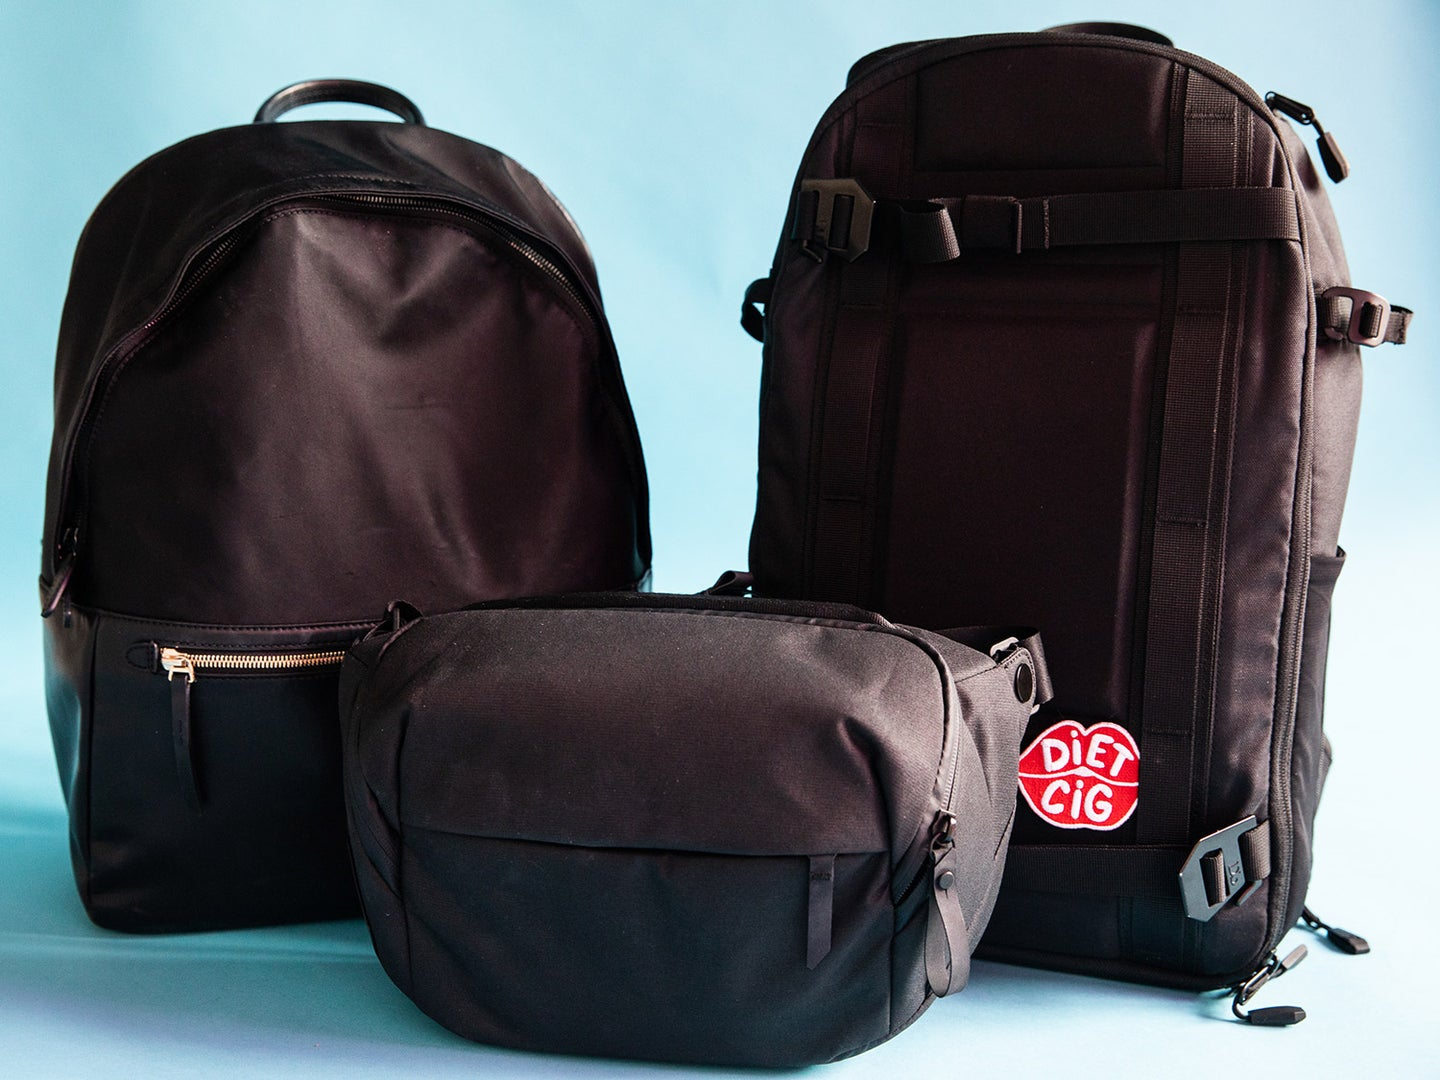 Compact camera bags that we love